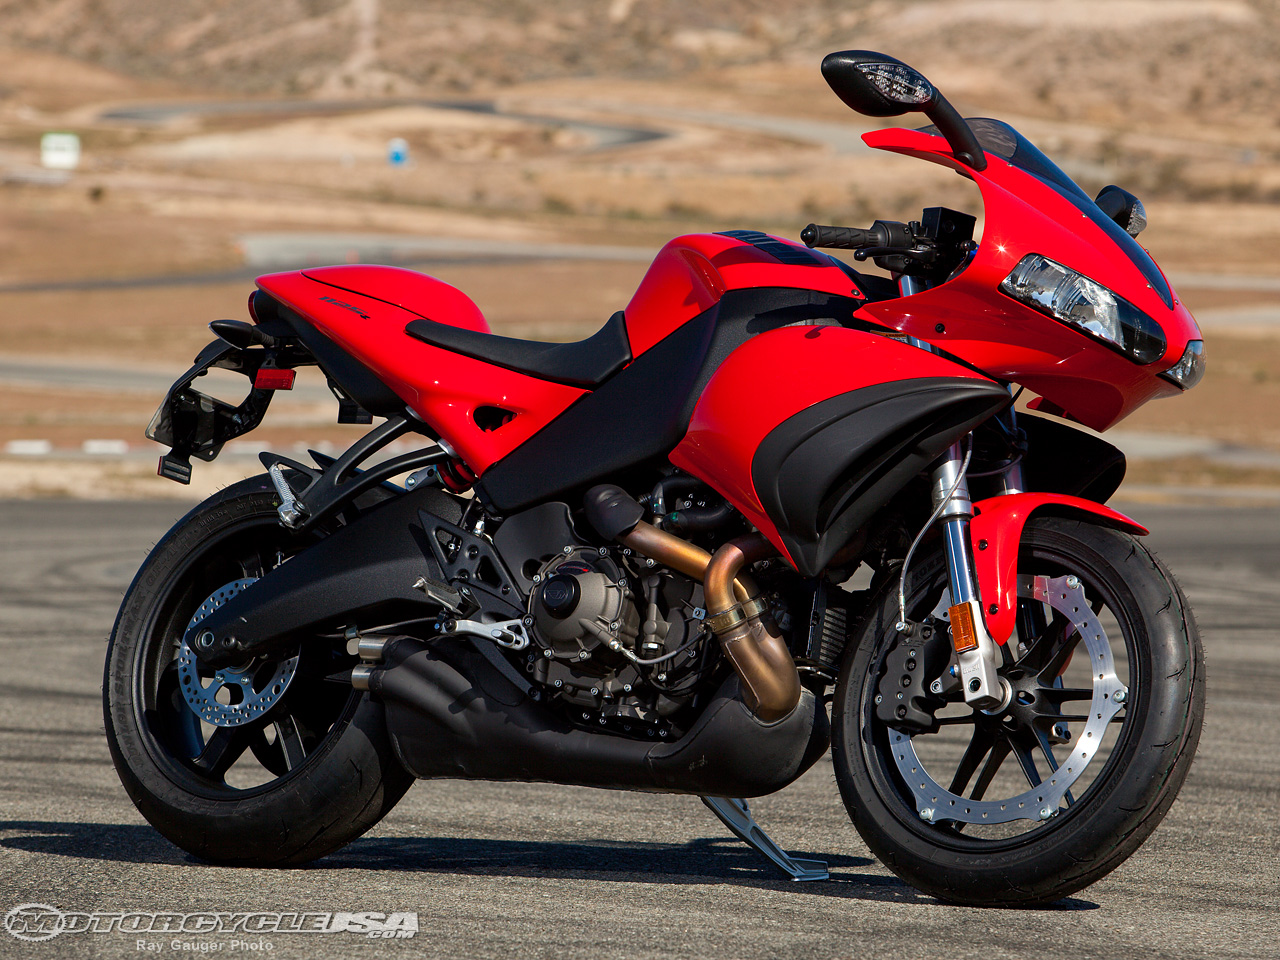 Buell 1125 R 2010 images #66458